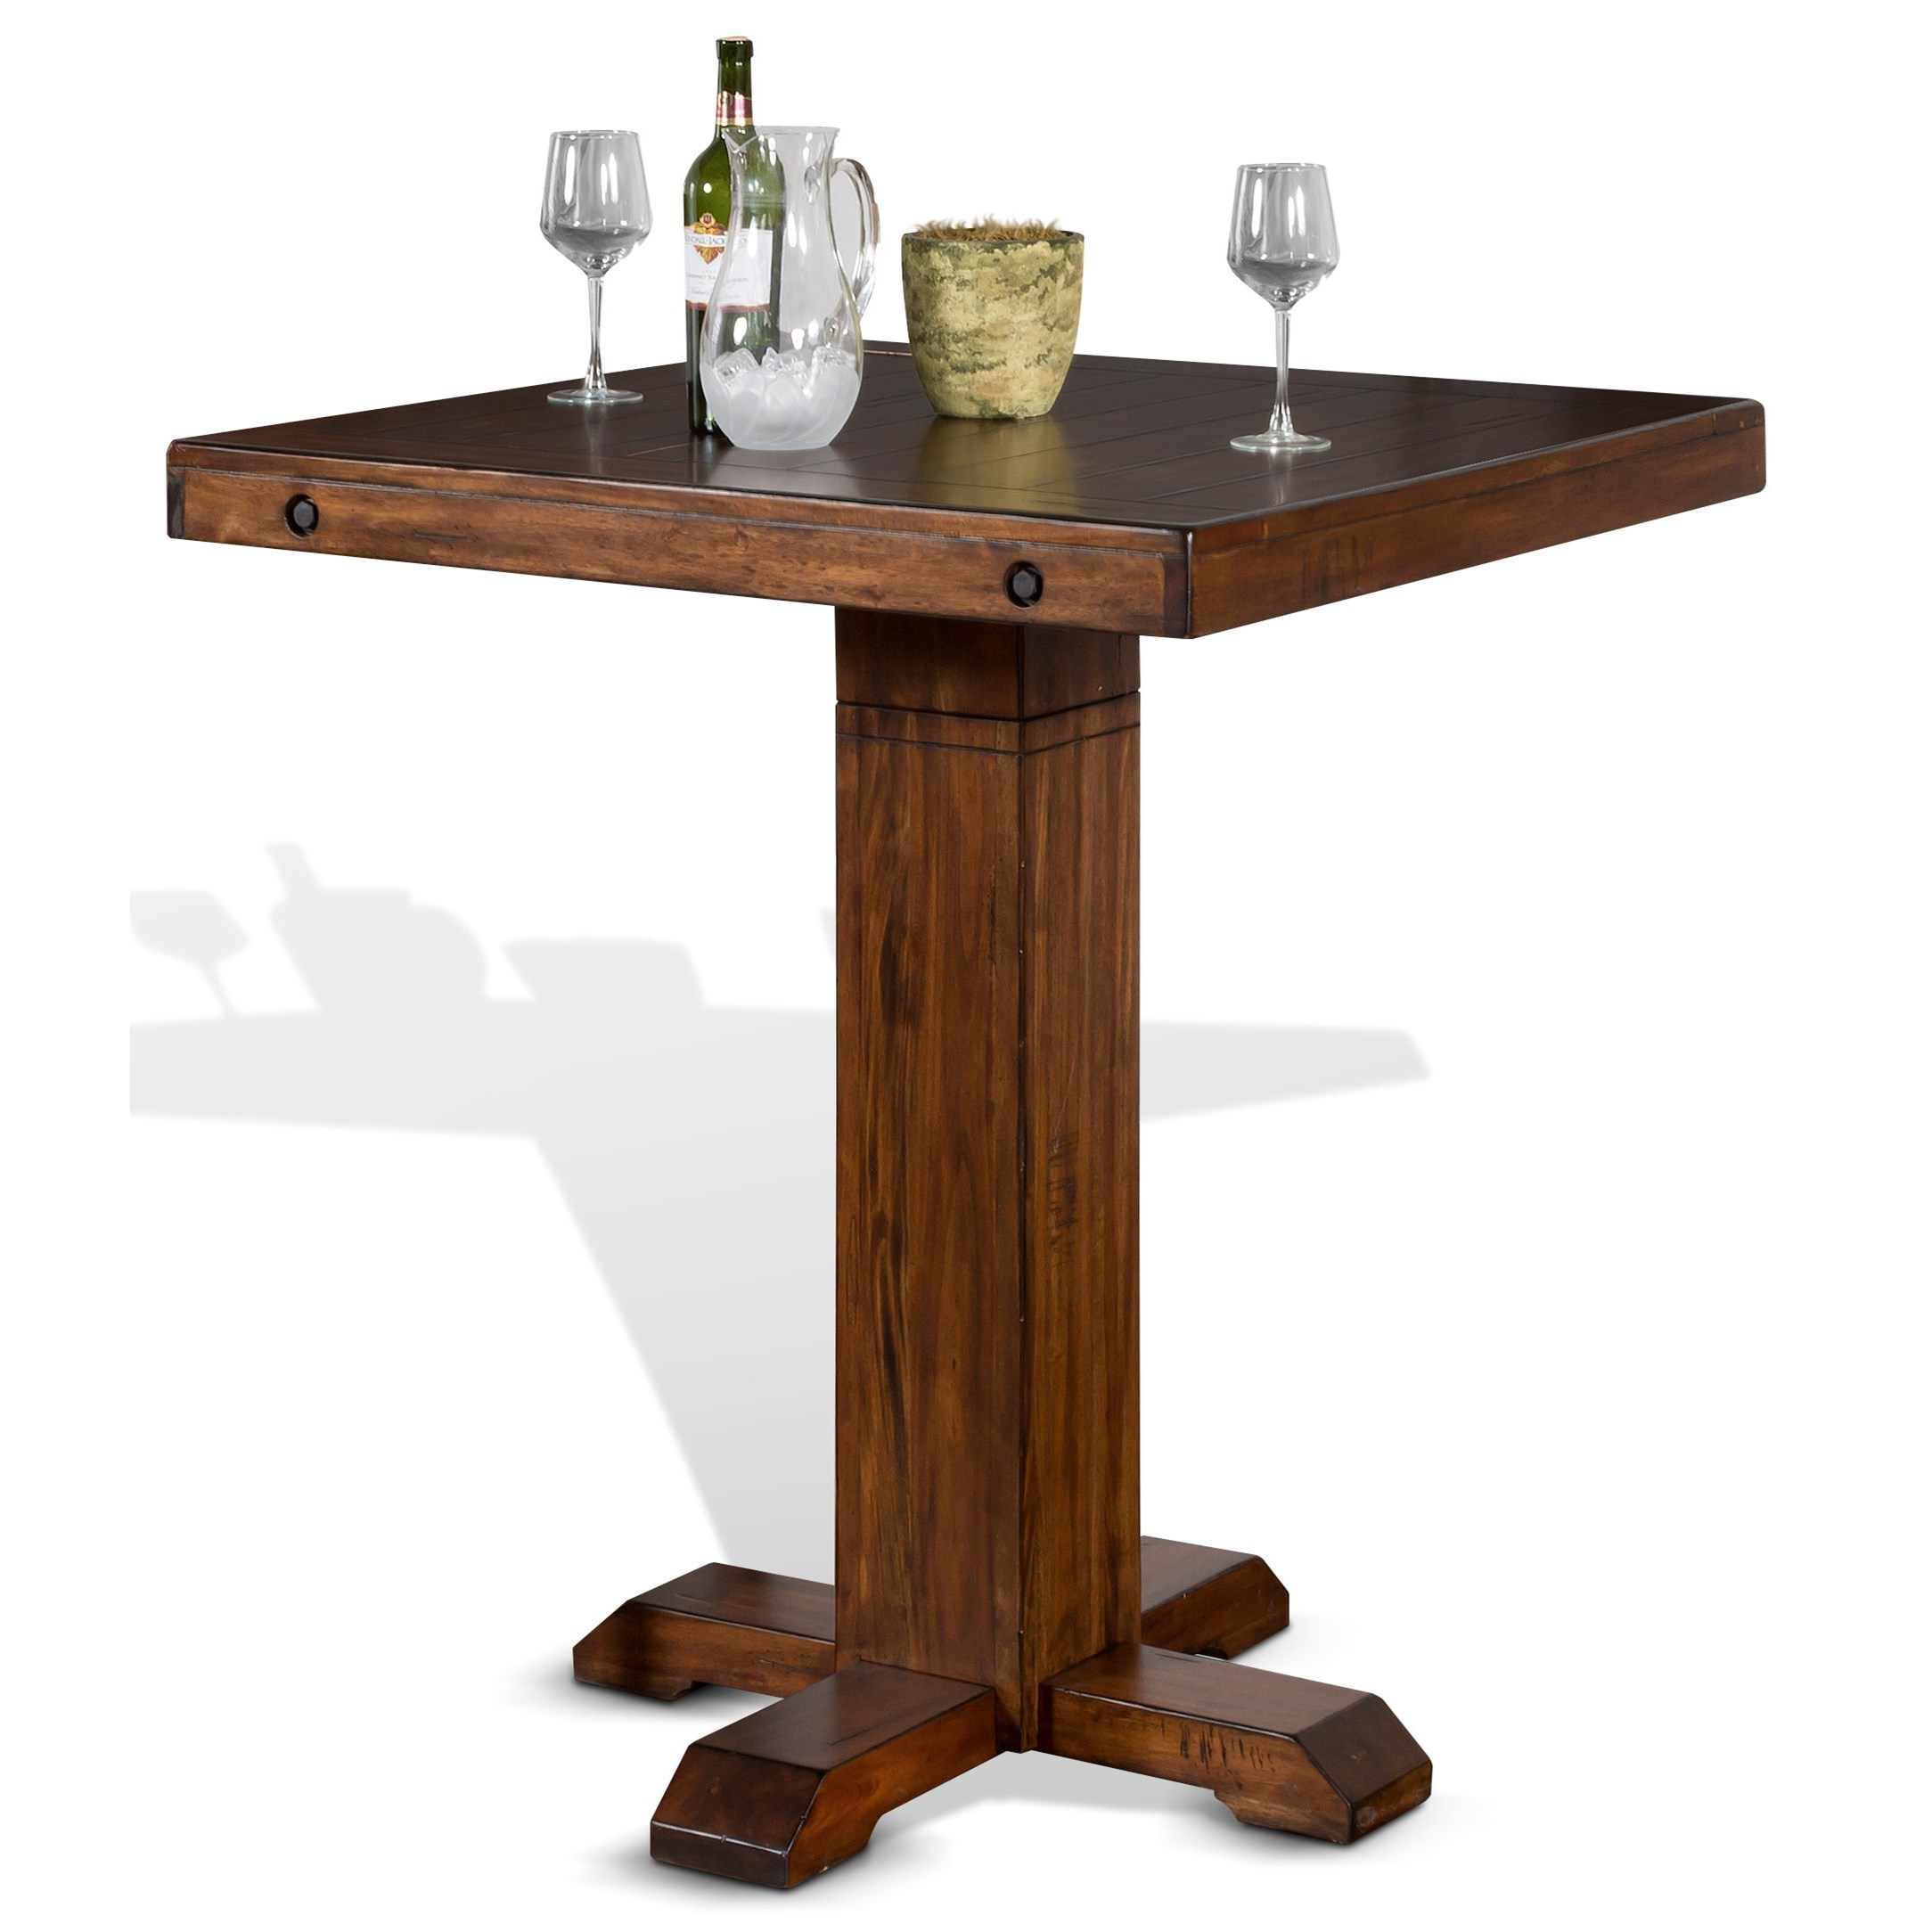 Sunny designs tuscany 1377vm adjustable height pub table for Design tuscany